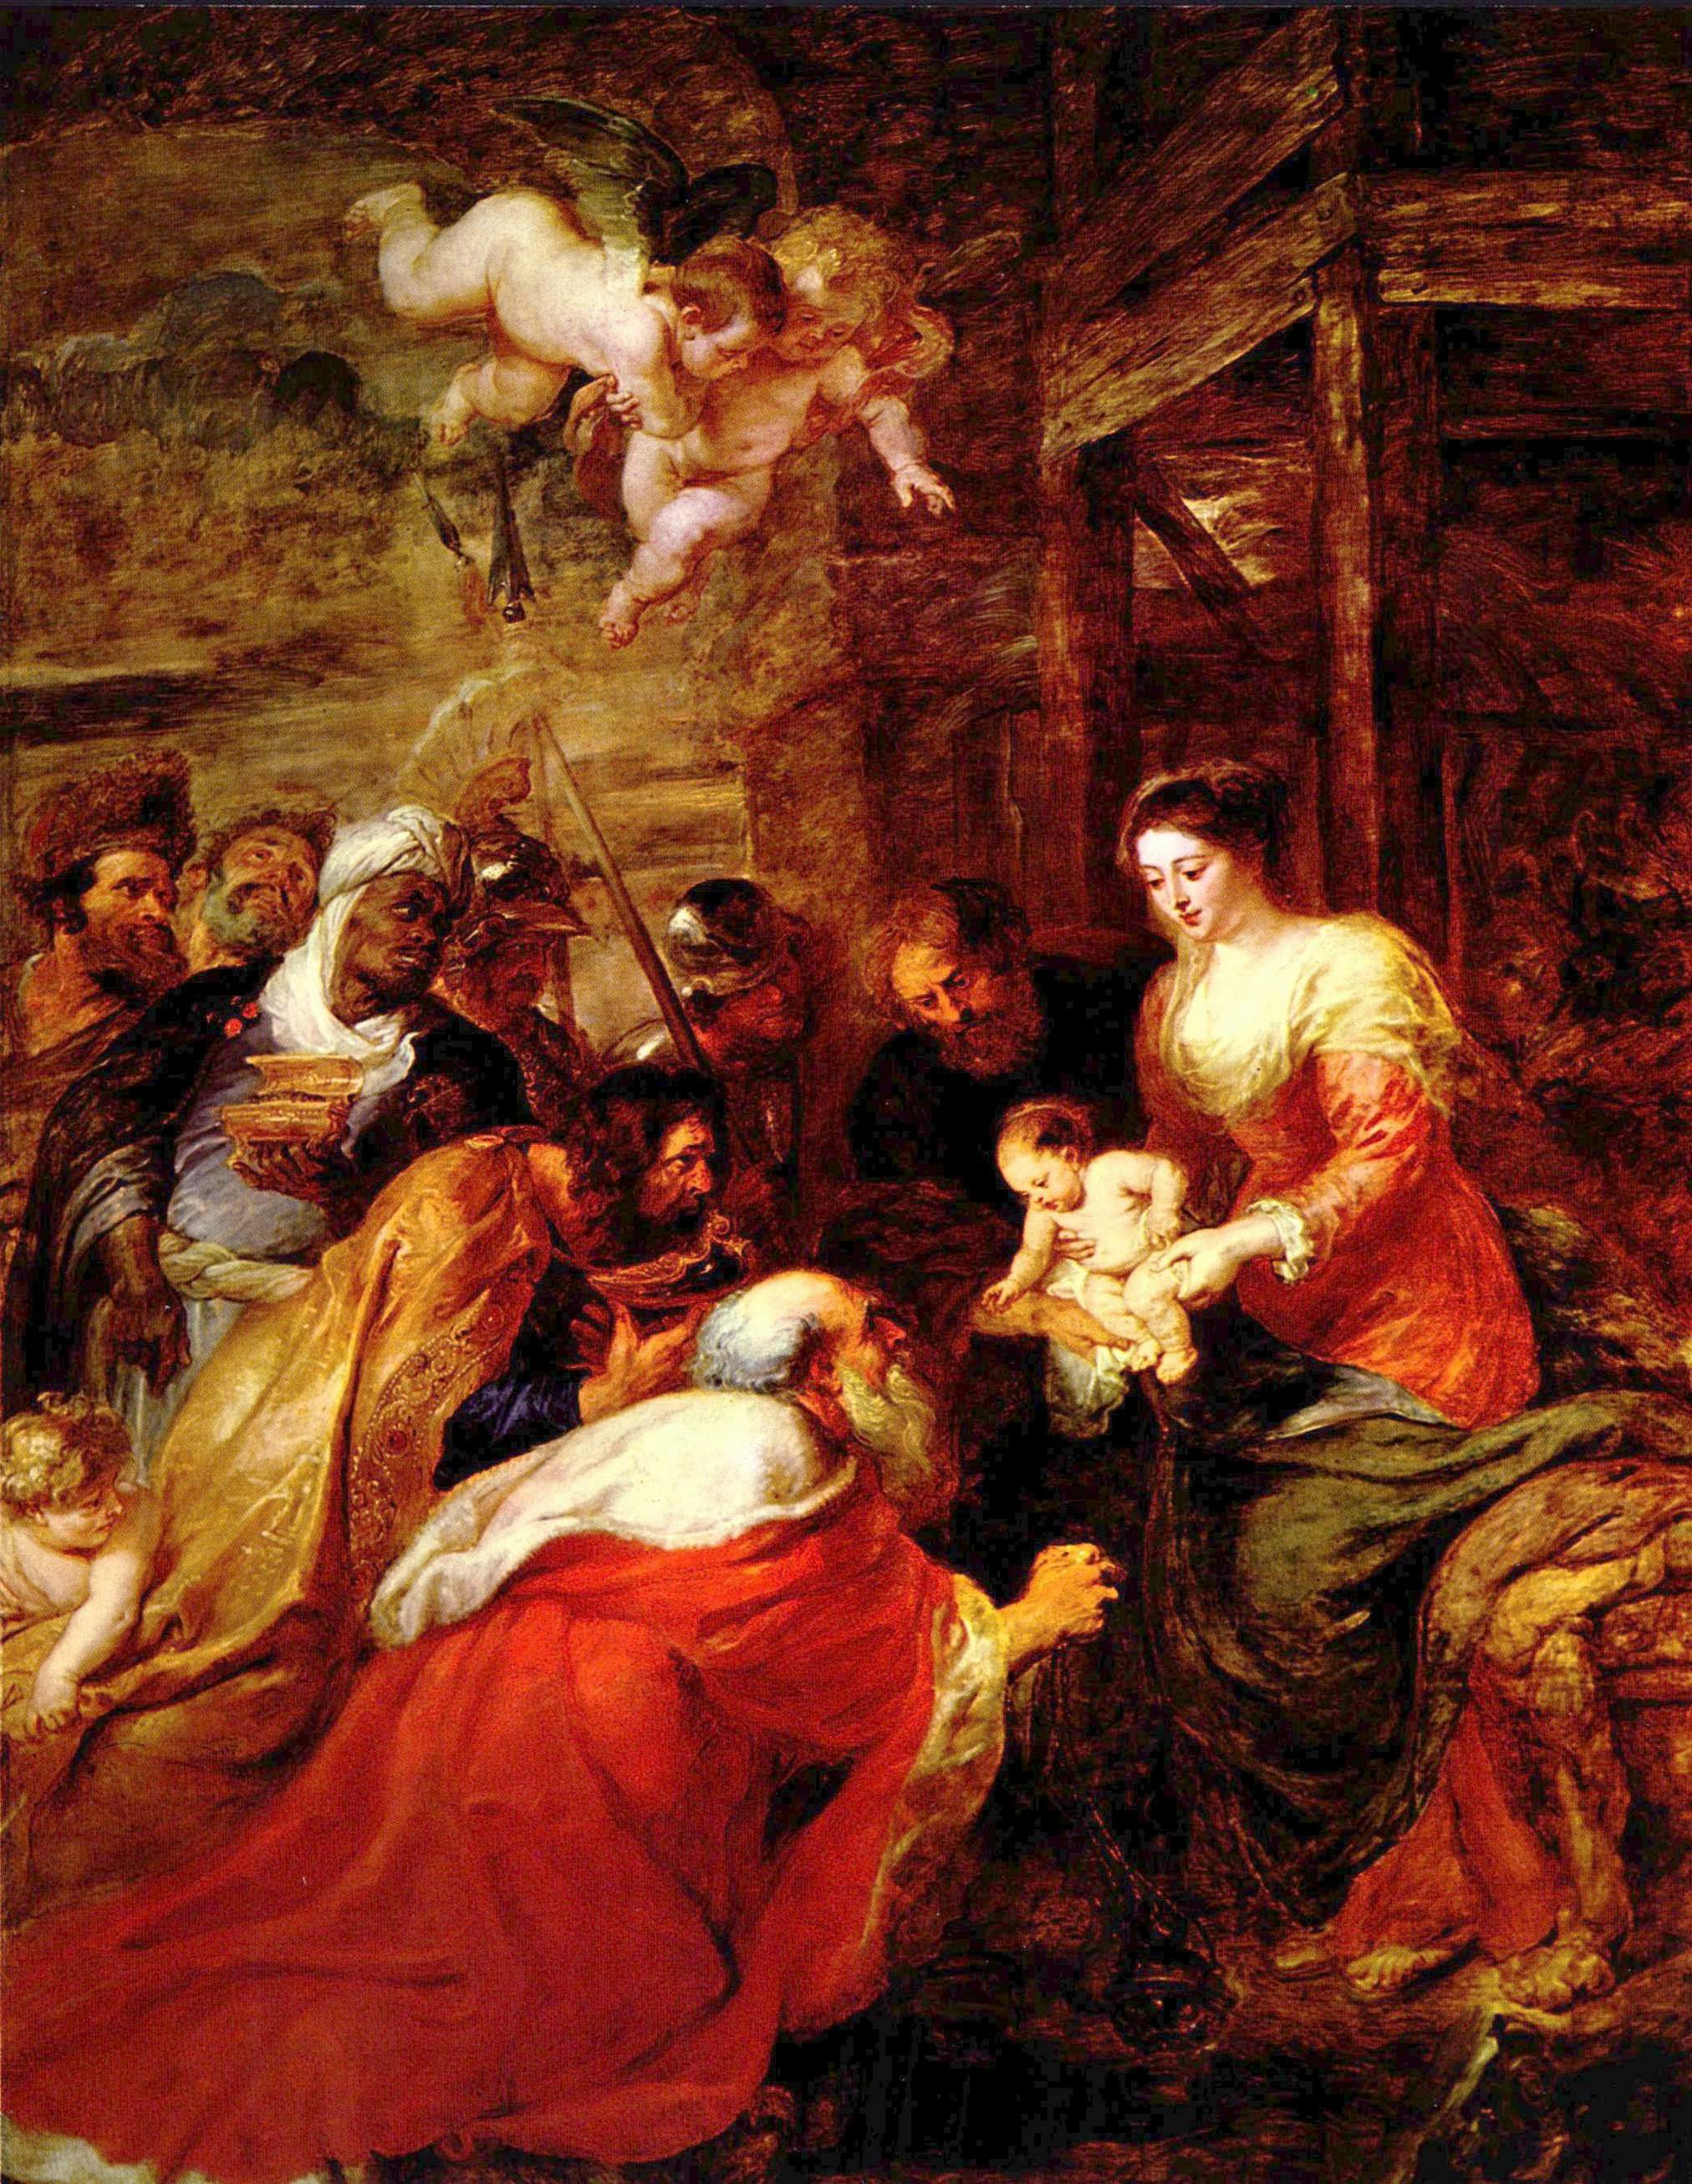 https://i0.wp.com/upload.wikimedia.org/wikipedia/commons/8/82/Peter_Paul_Rubens_009.jpg